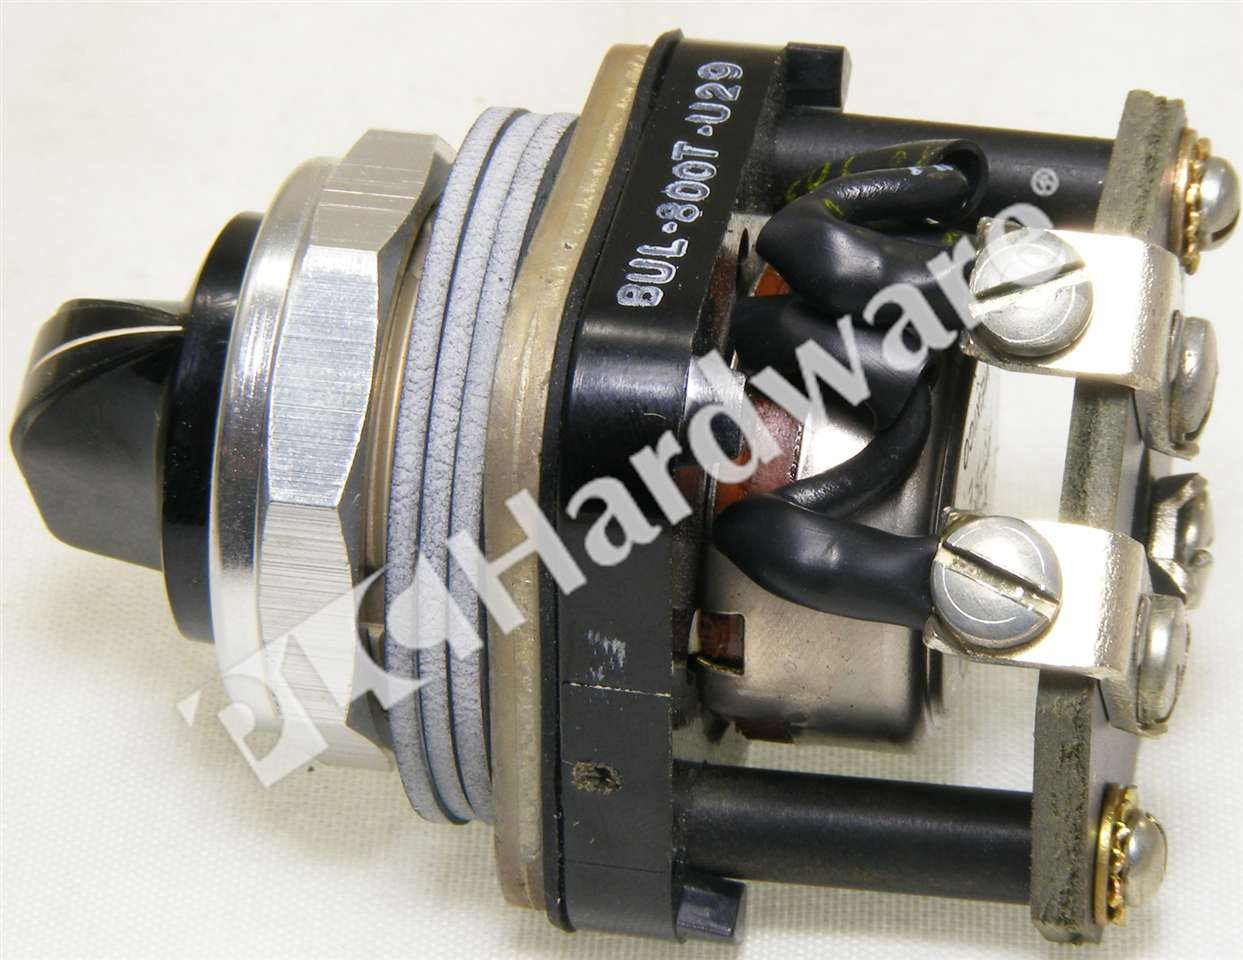 RA 800T U29 N NSO_4_12_10_26_13_23_b plc hardware allen bradley 800t u29, new surplus sealed 800t u29 wiring diagram at gsmportal.co